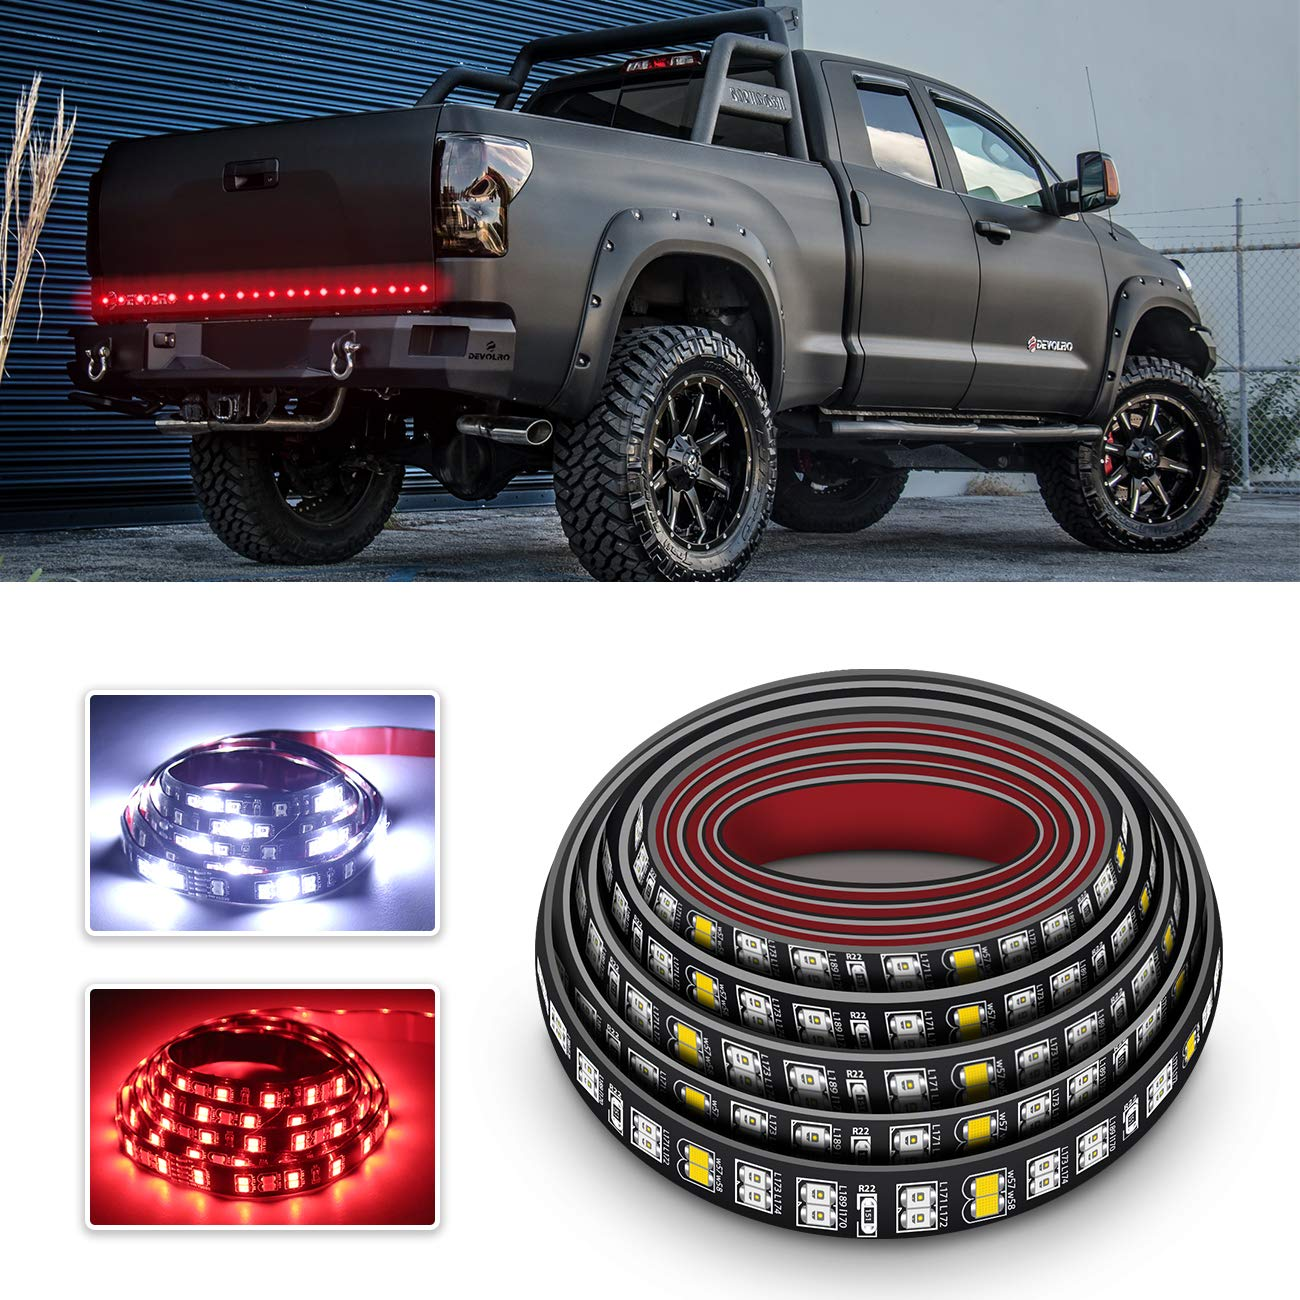 LED Truck Tailgate Light Bar 60 Inch Double Row LED Light Strip for Truck Reverse Brake Turn Signal Tail No-Drill IP67 Waterproof for Pickup SUV Jeep RV Van Dodge Ram Chevy GMC Ford AMMON